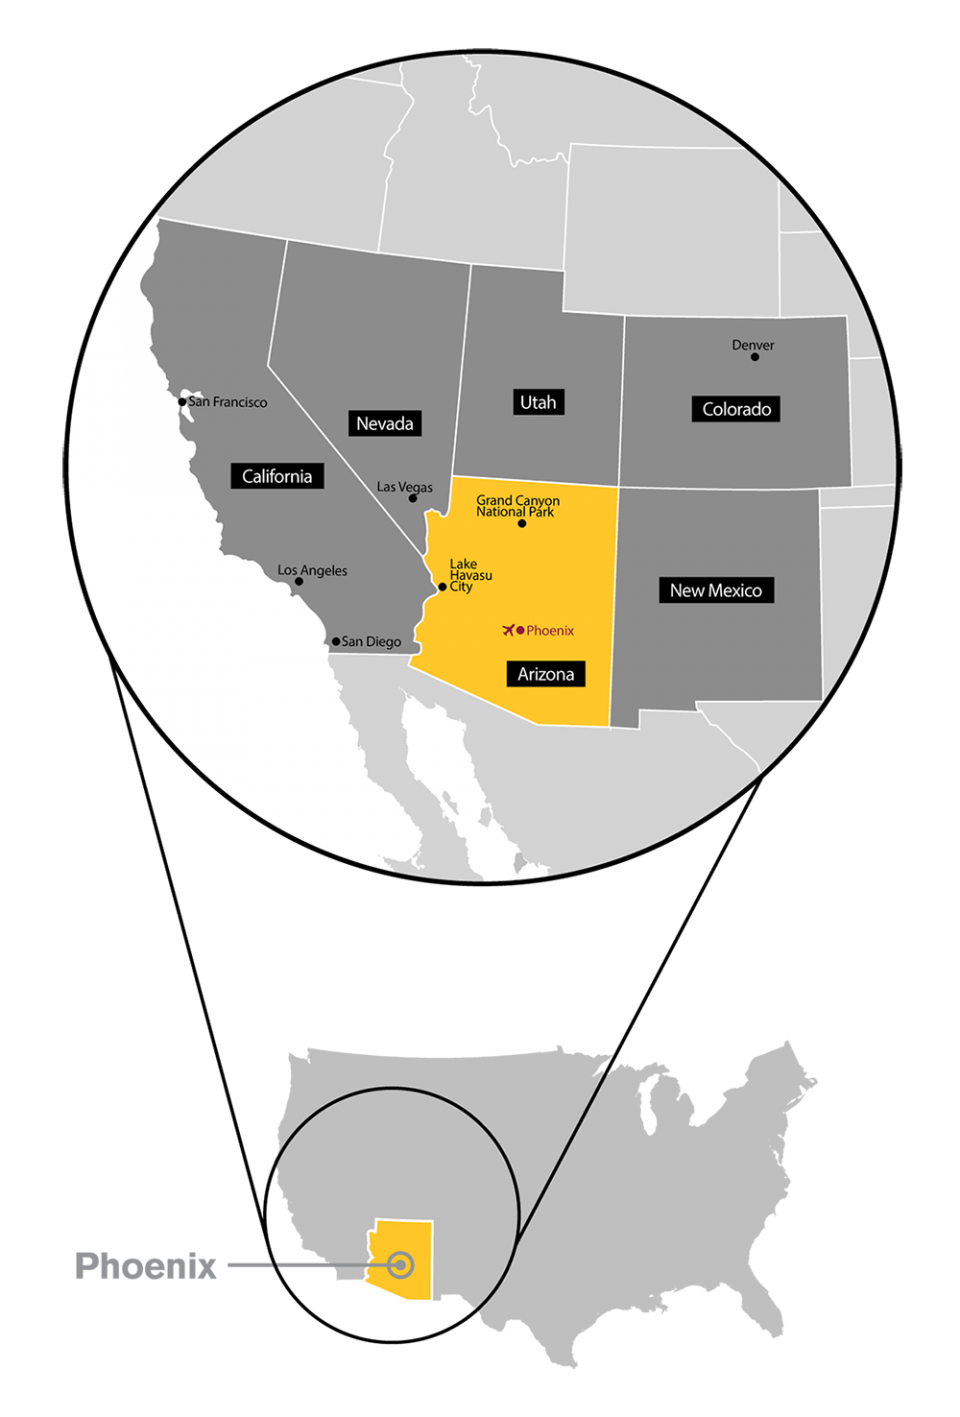 Map of the US showing the location of ASU in Arizona